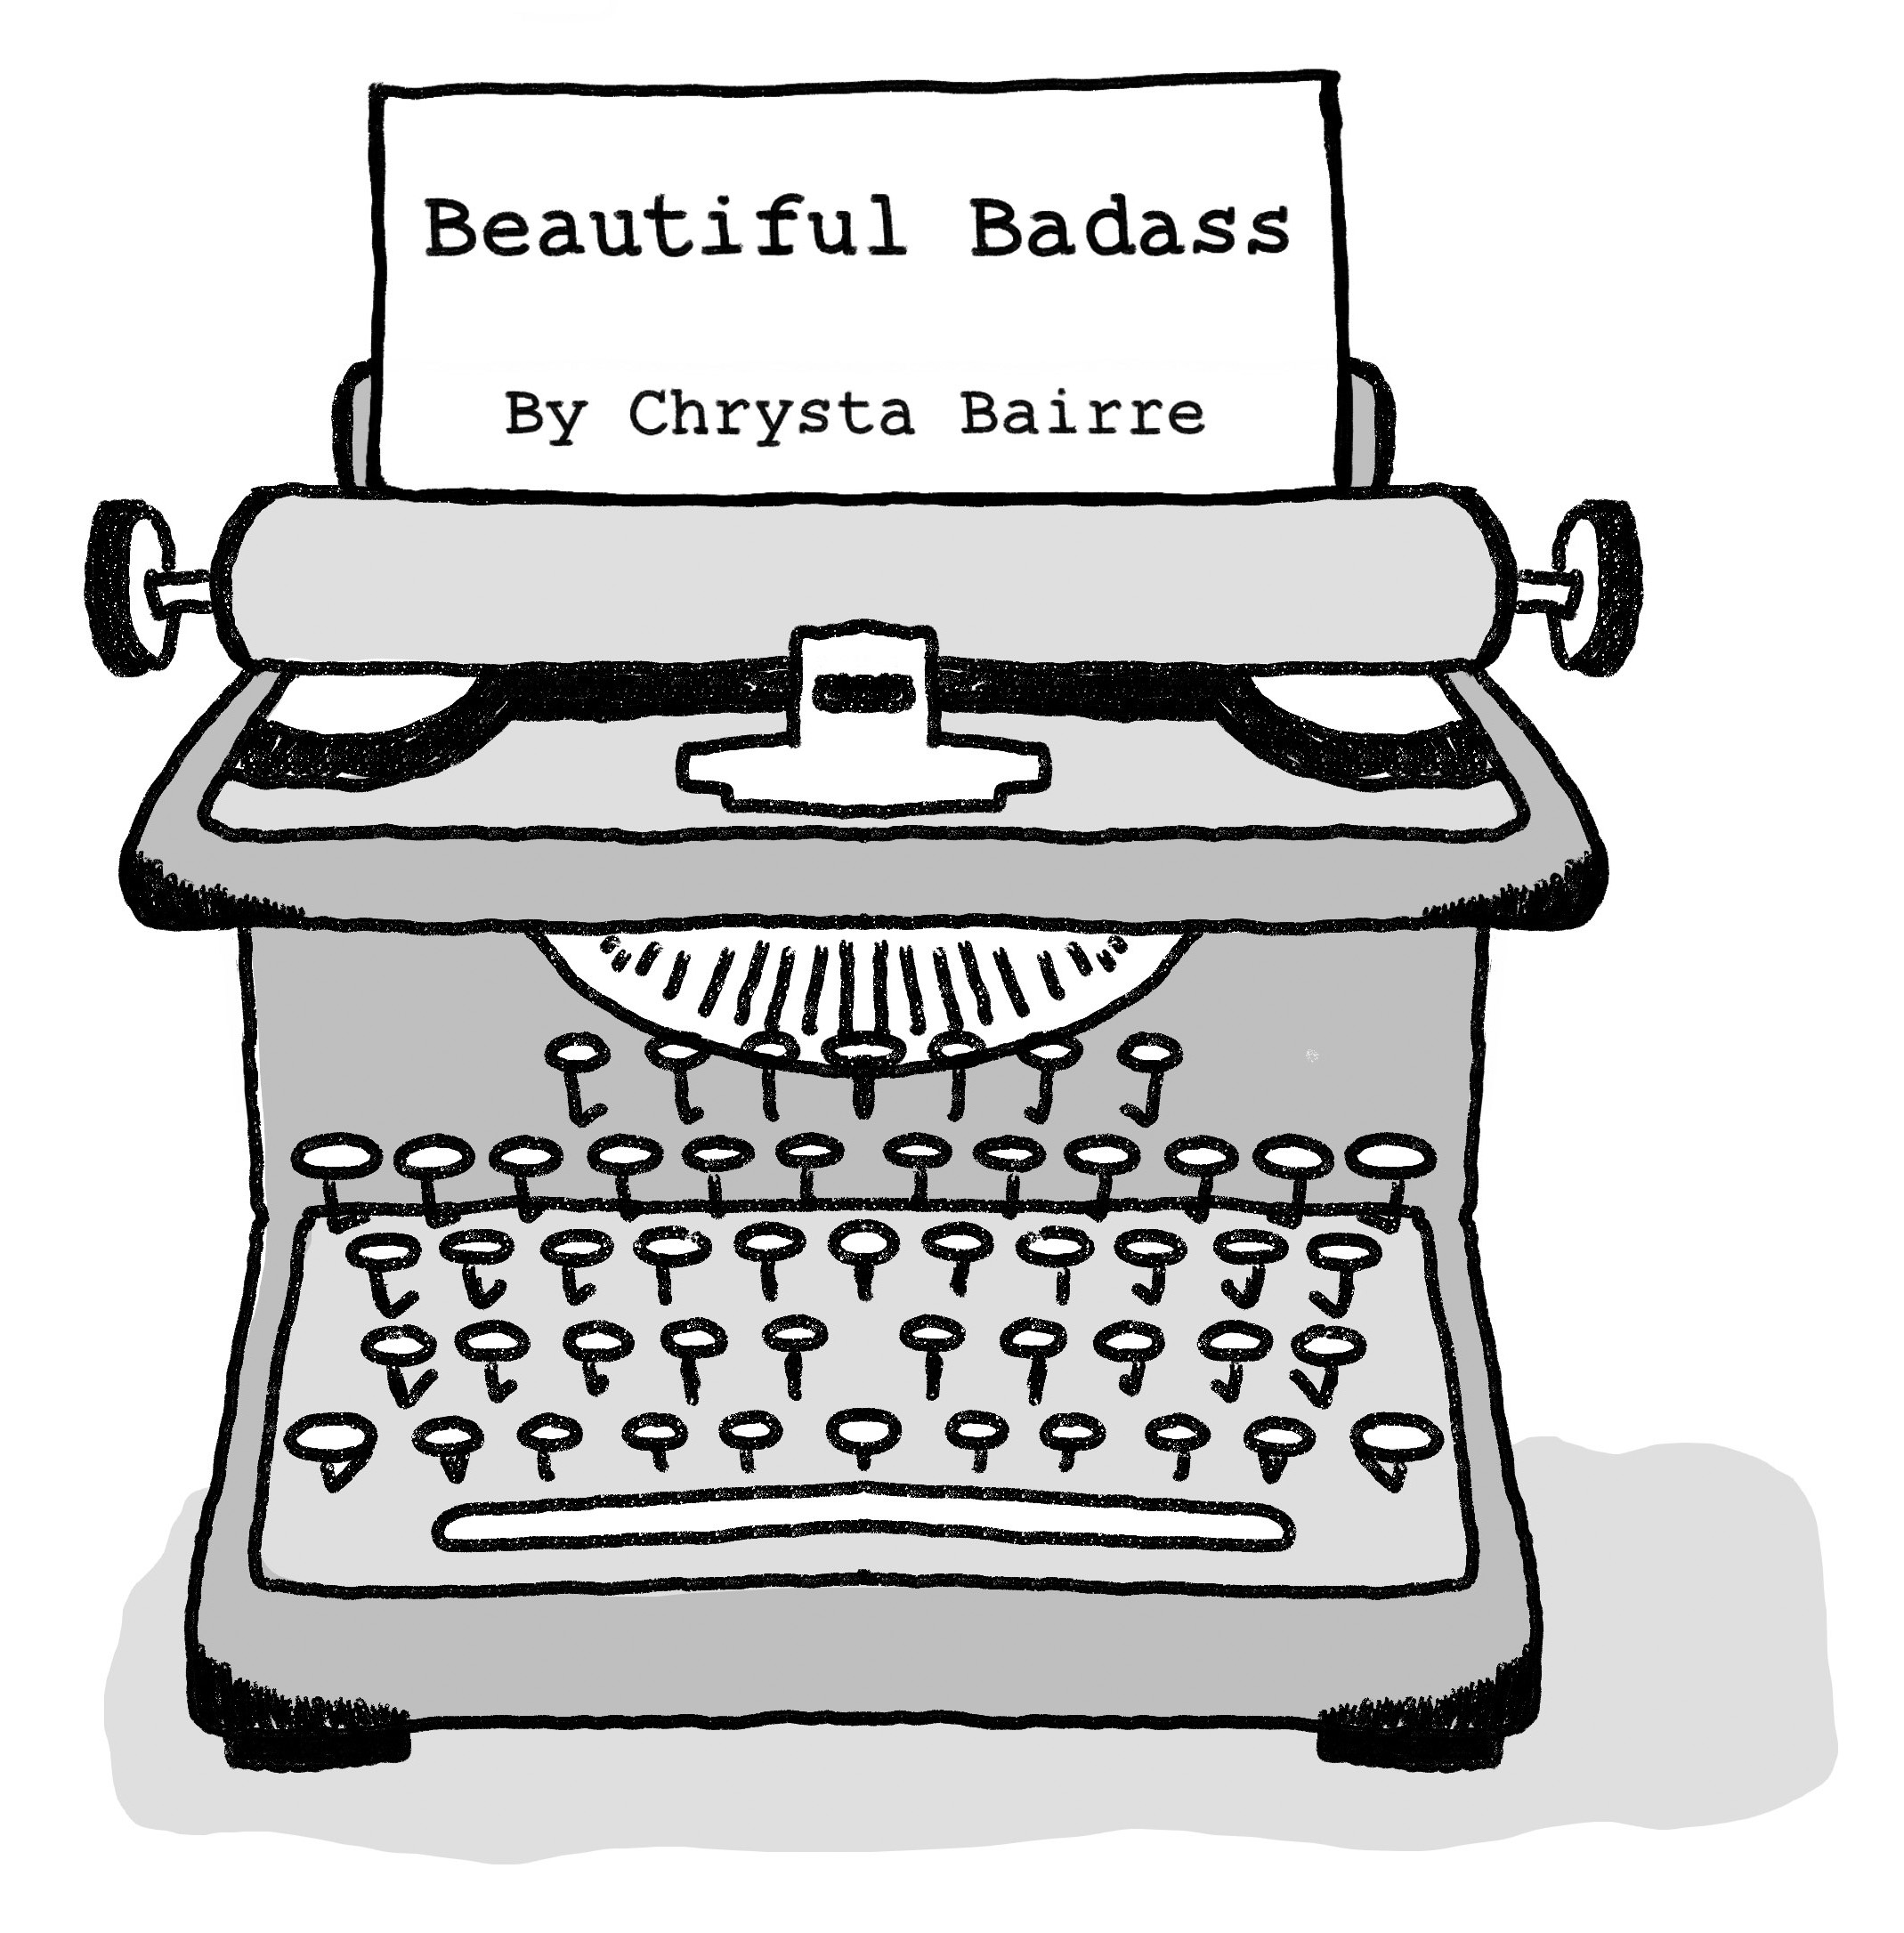 Illustration from the book Beautiful Badass.  A typewriter with a page coming out of it, on it is ty